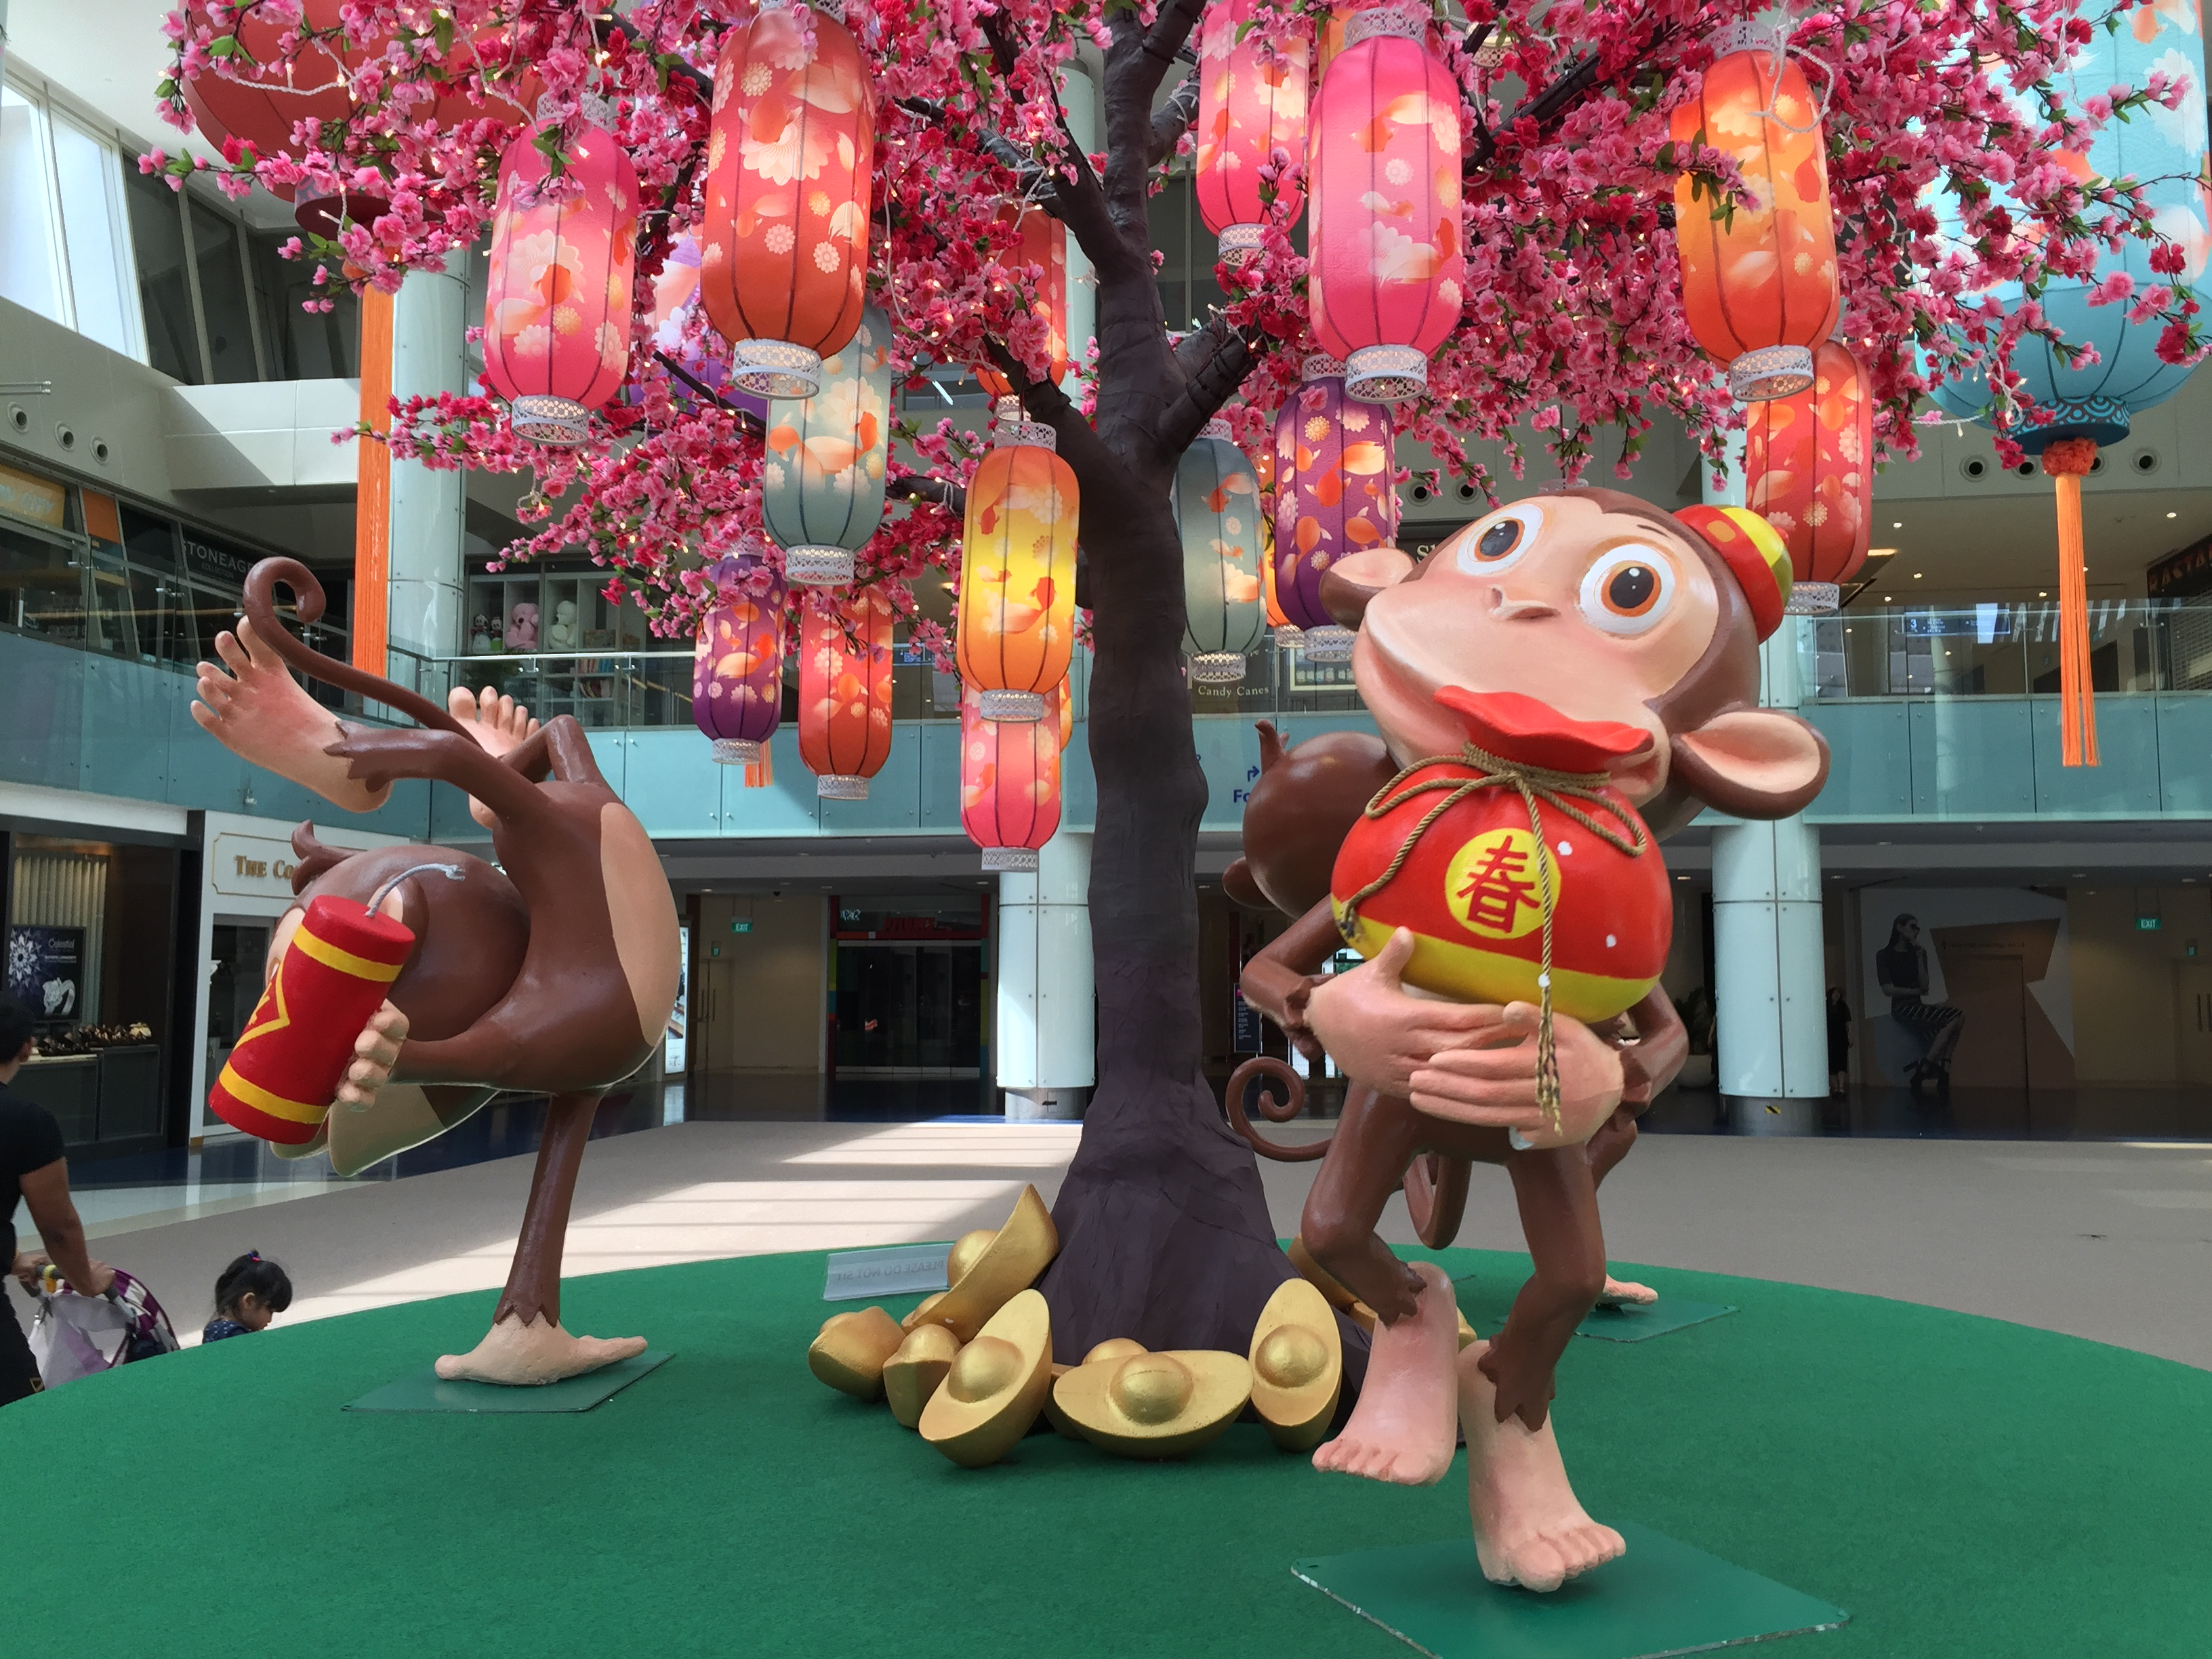 Lunar New Year decorations in Marina Square, Singapore.